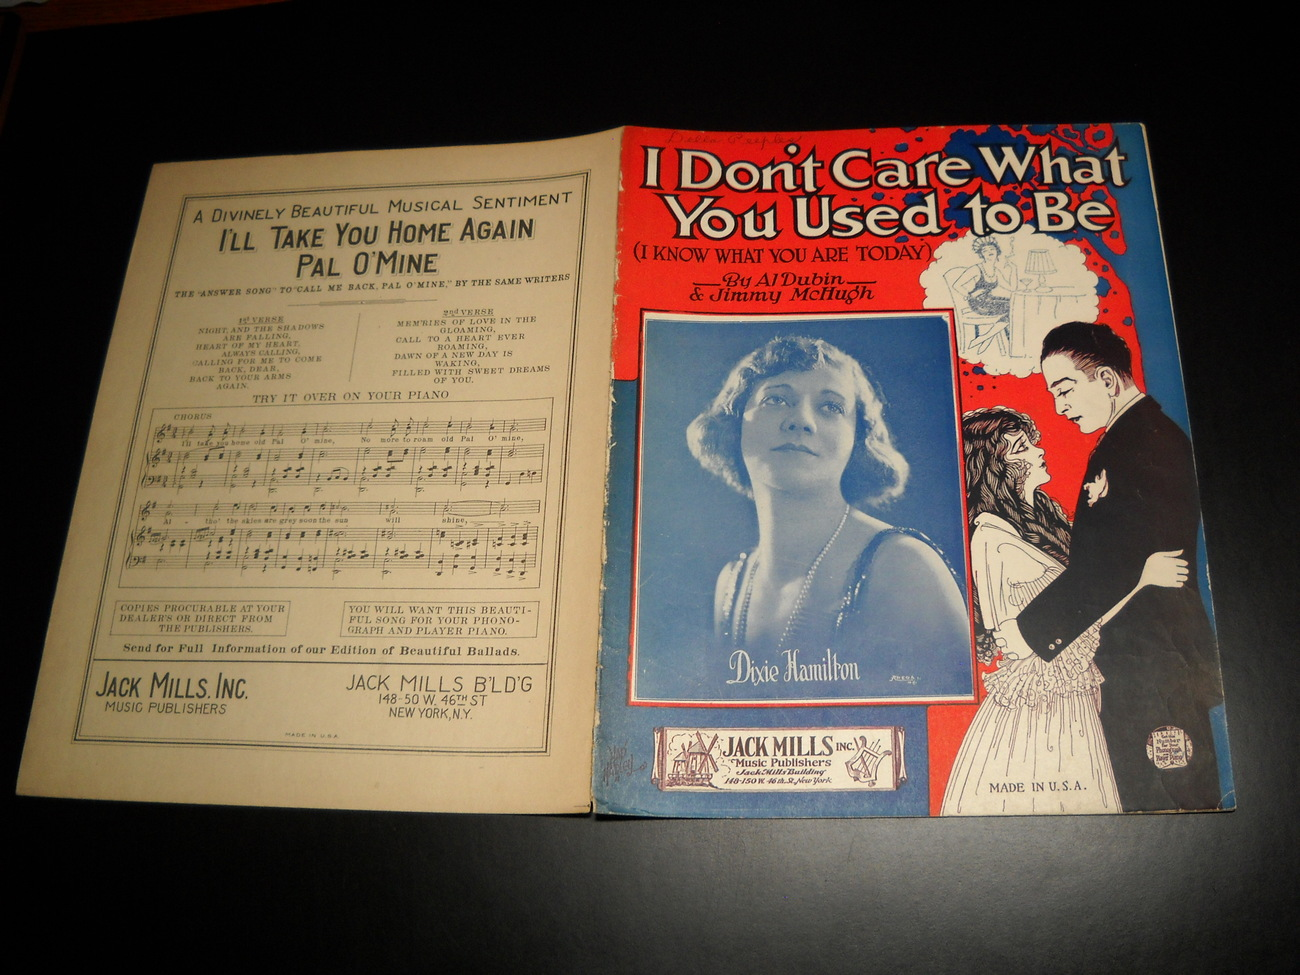 Sheet_music_i_don_t_care_what_you_use_to_be_dixie_hamilton_1924_jack_mills_04